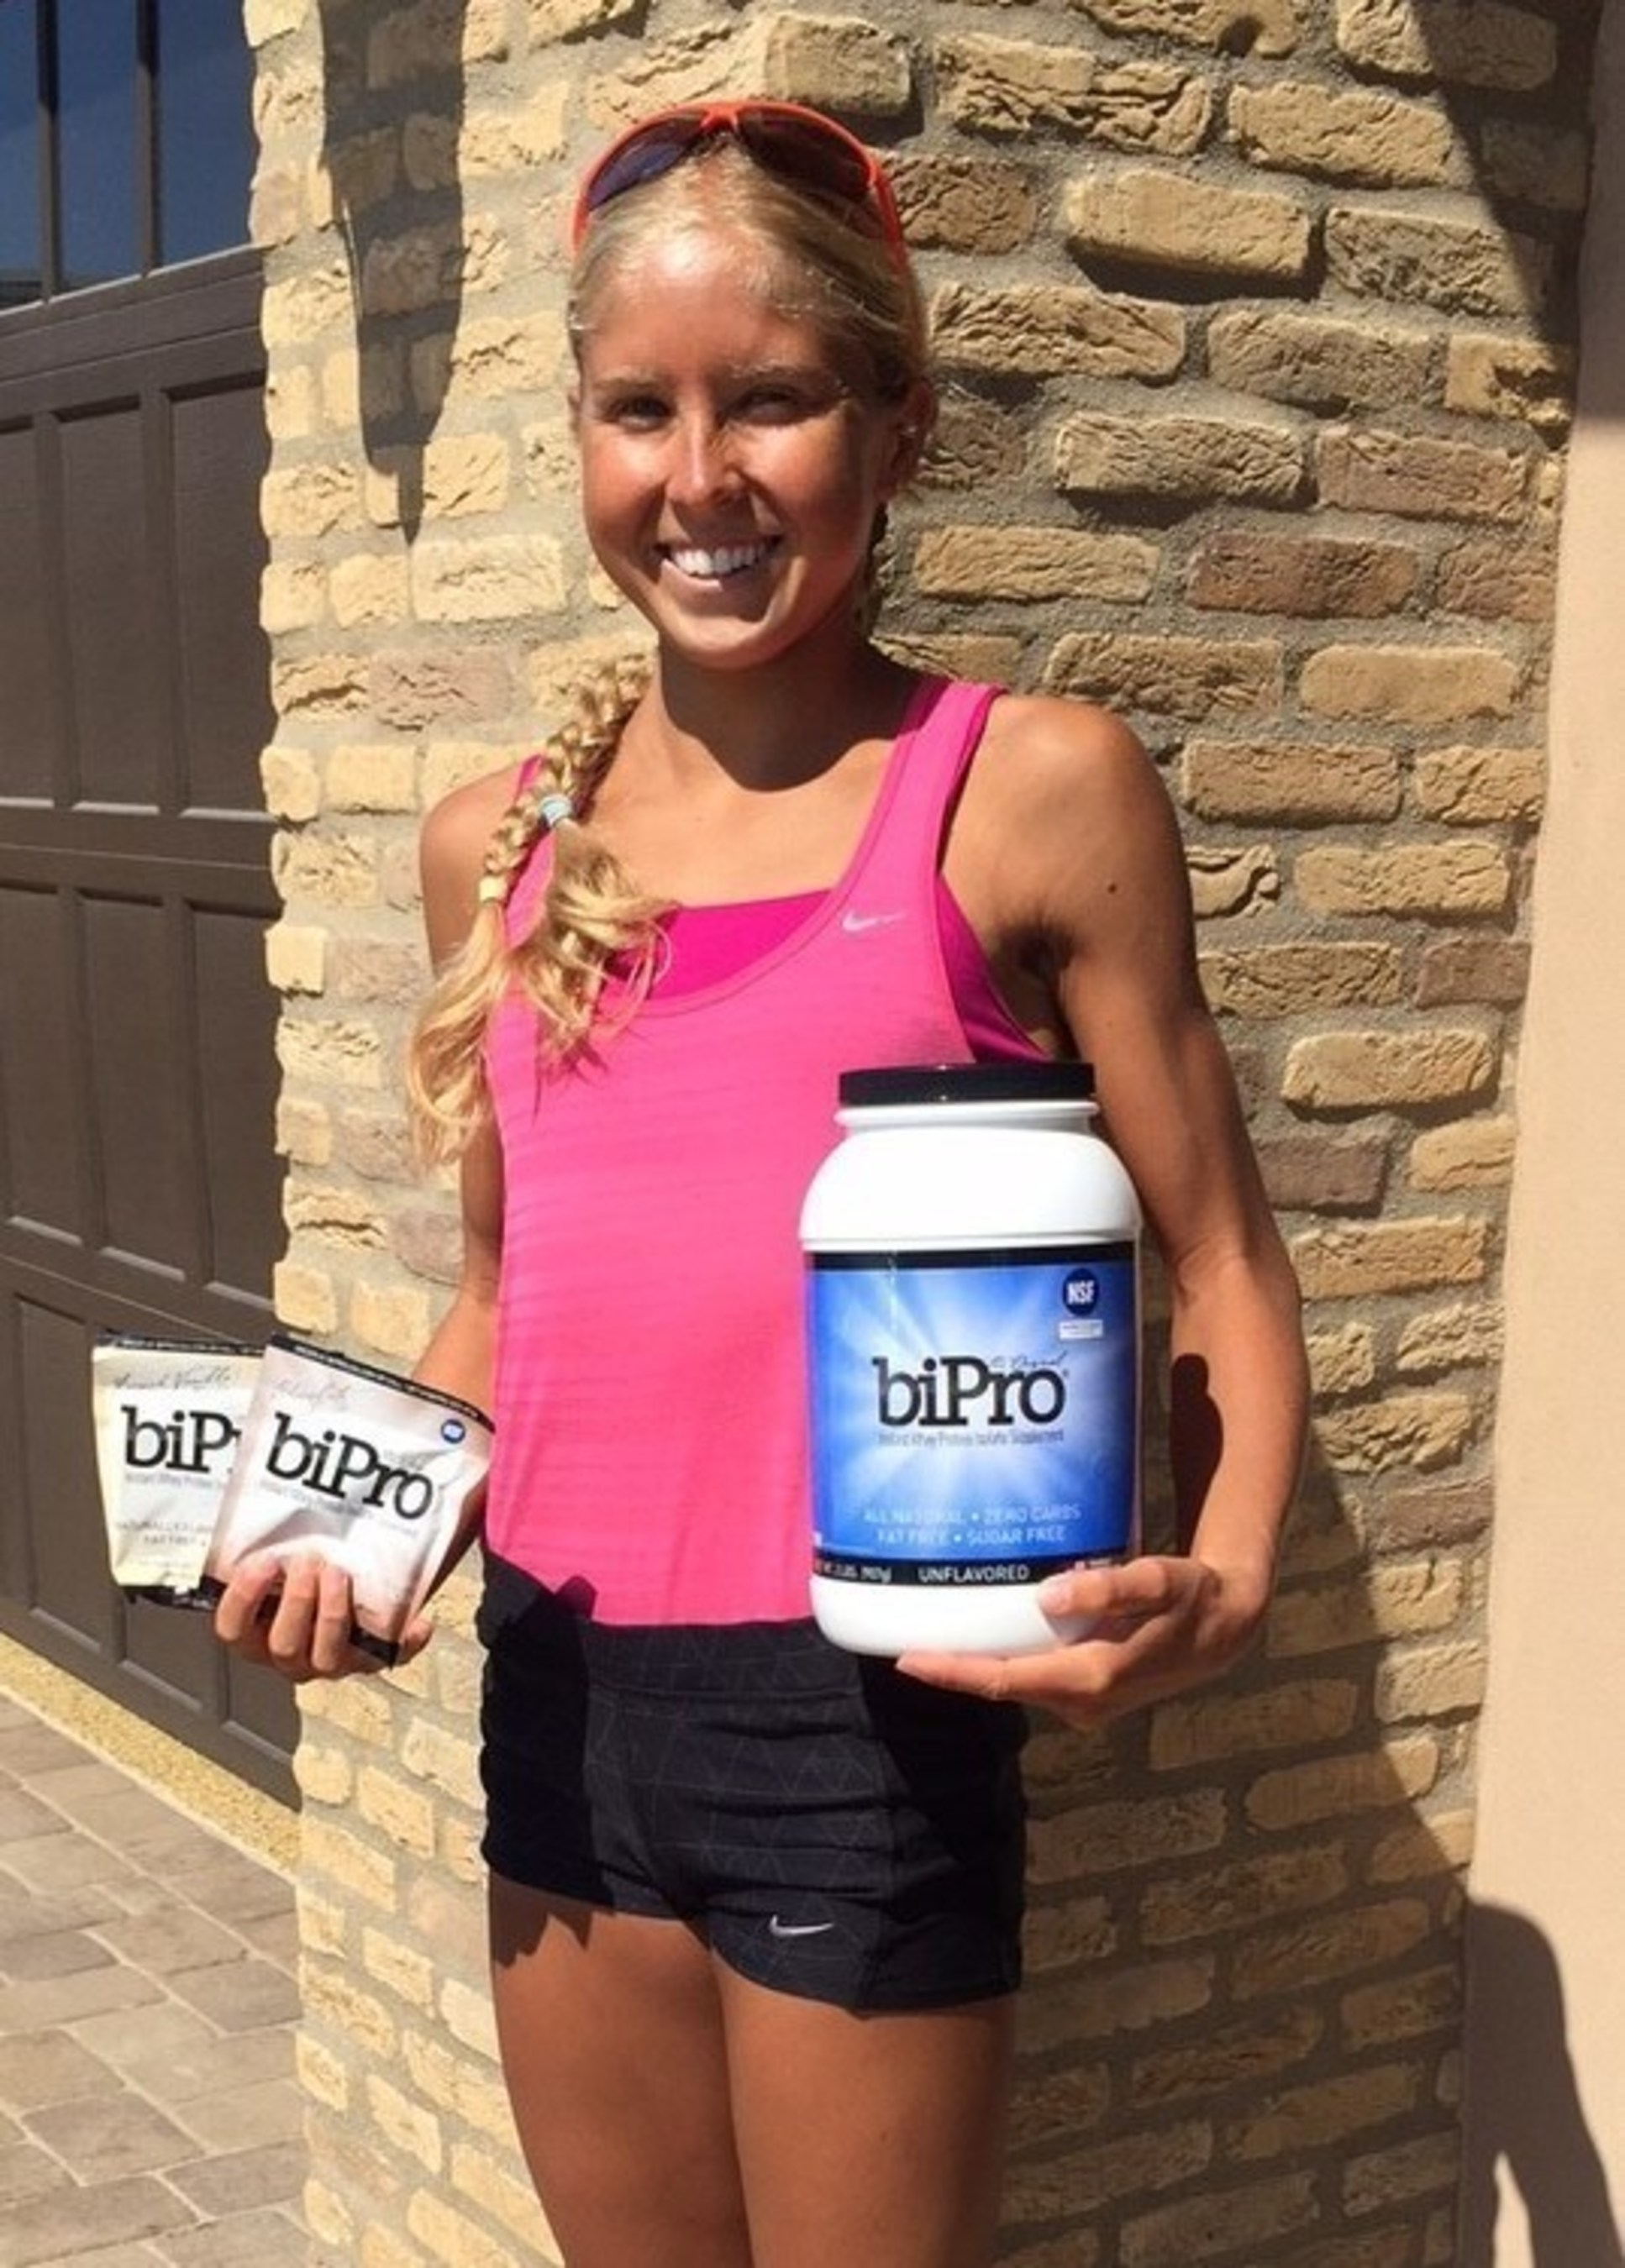 Professional runner Jordan Hasay with BiPro whey protein isolate.